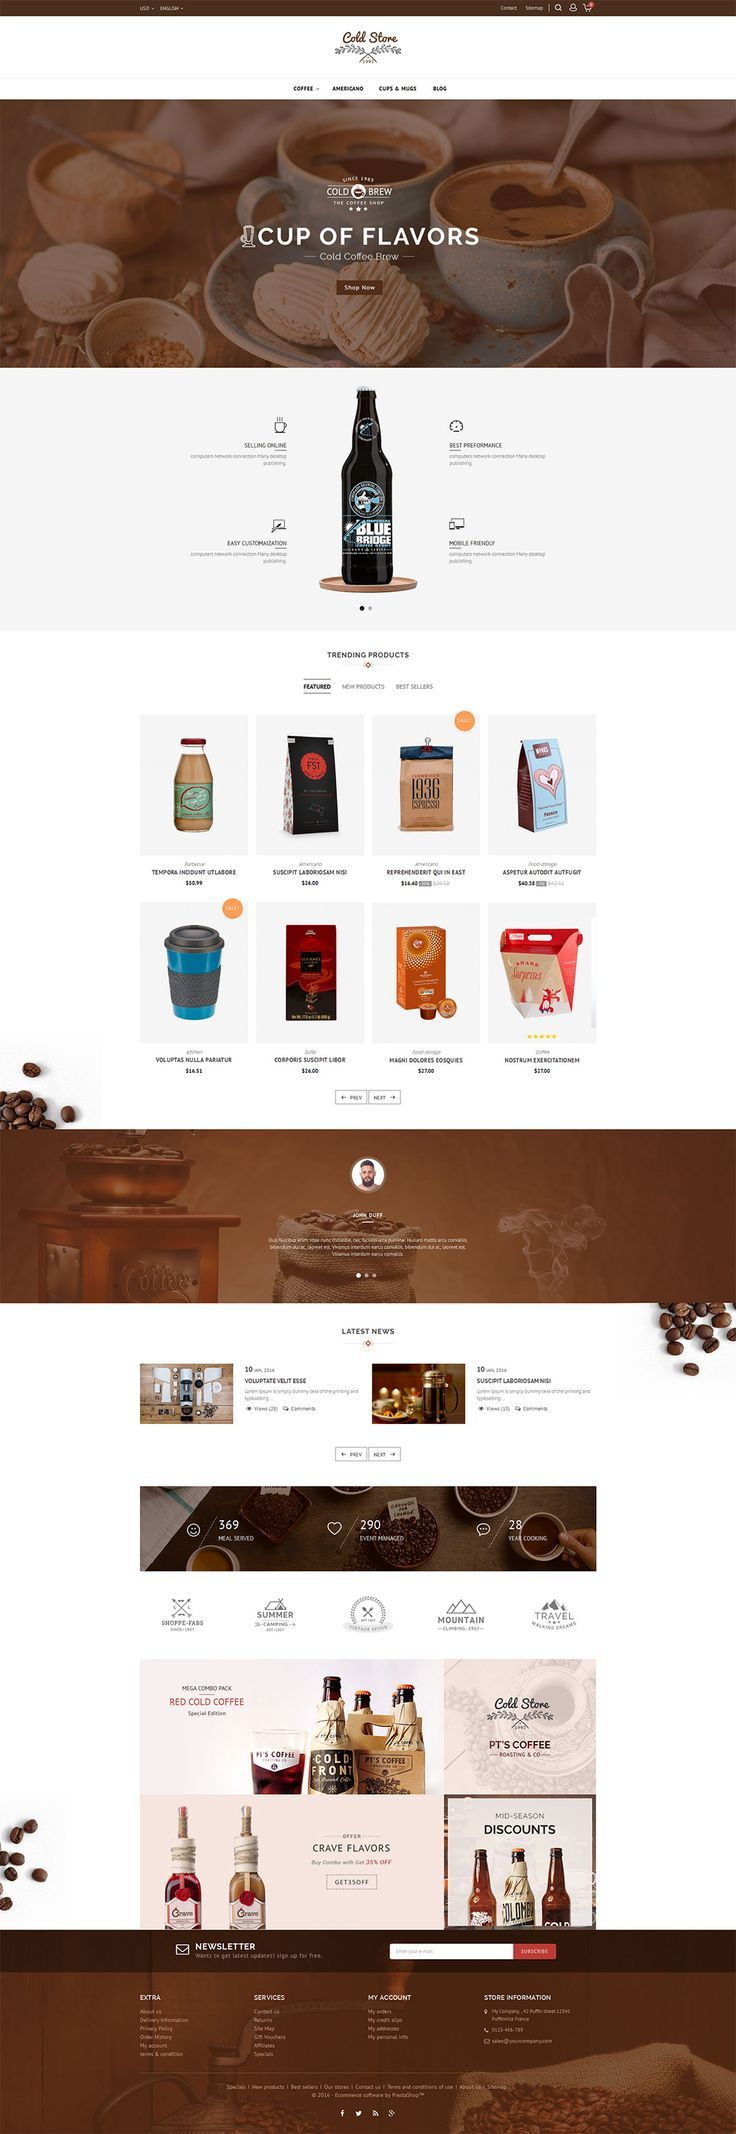 ecommerce coffee drinks wine food bakery organic restaurant - Multi Restaurant Design